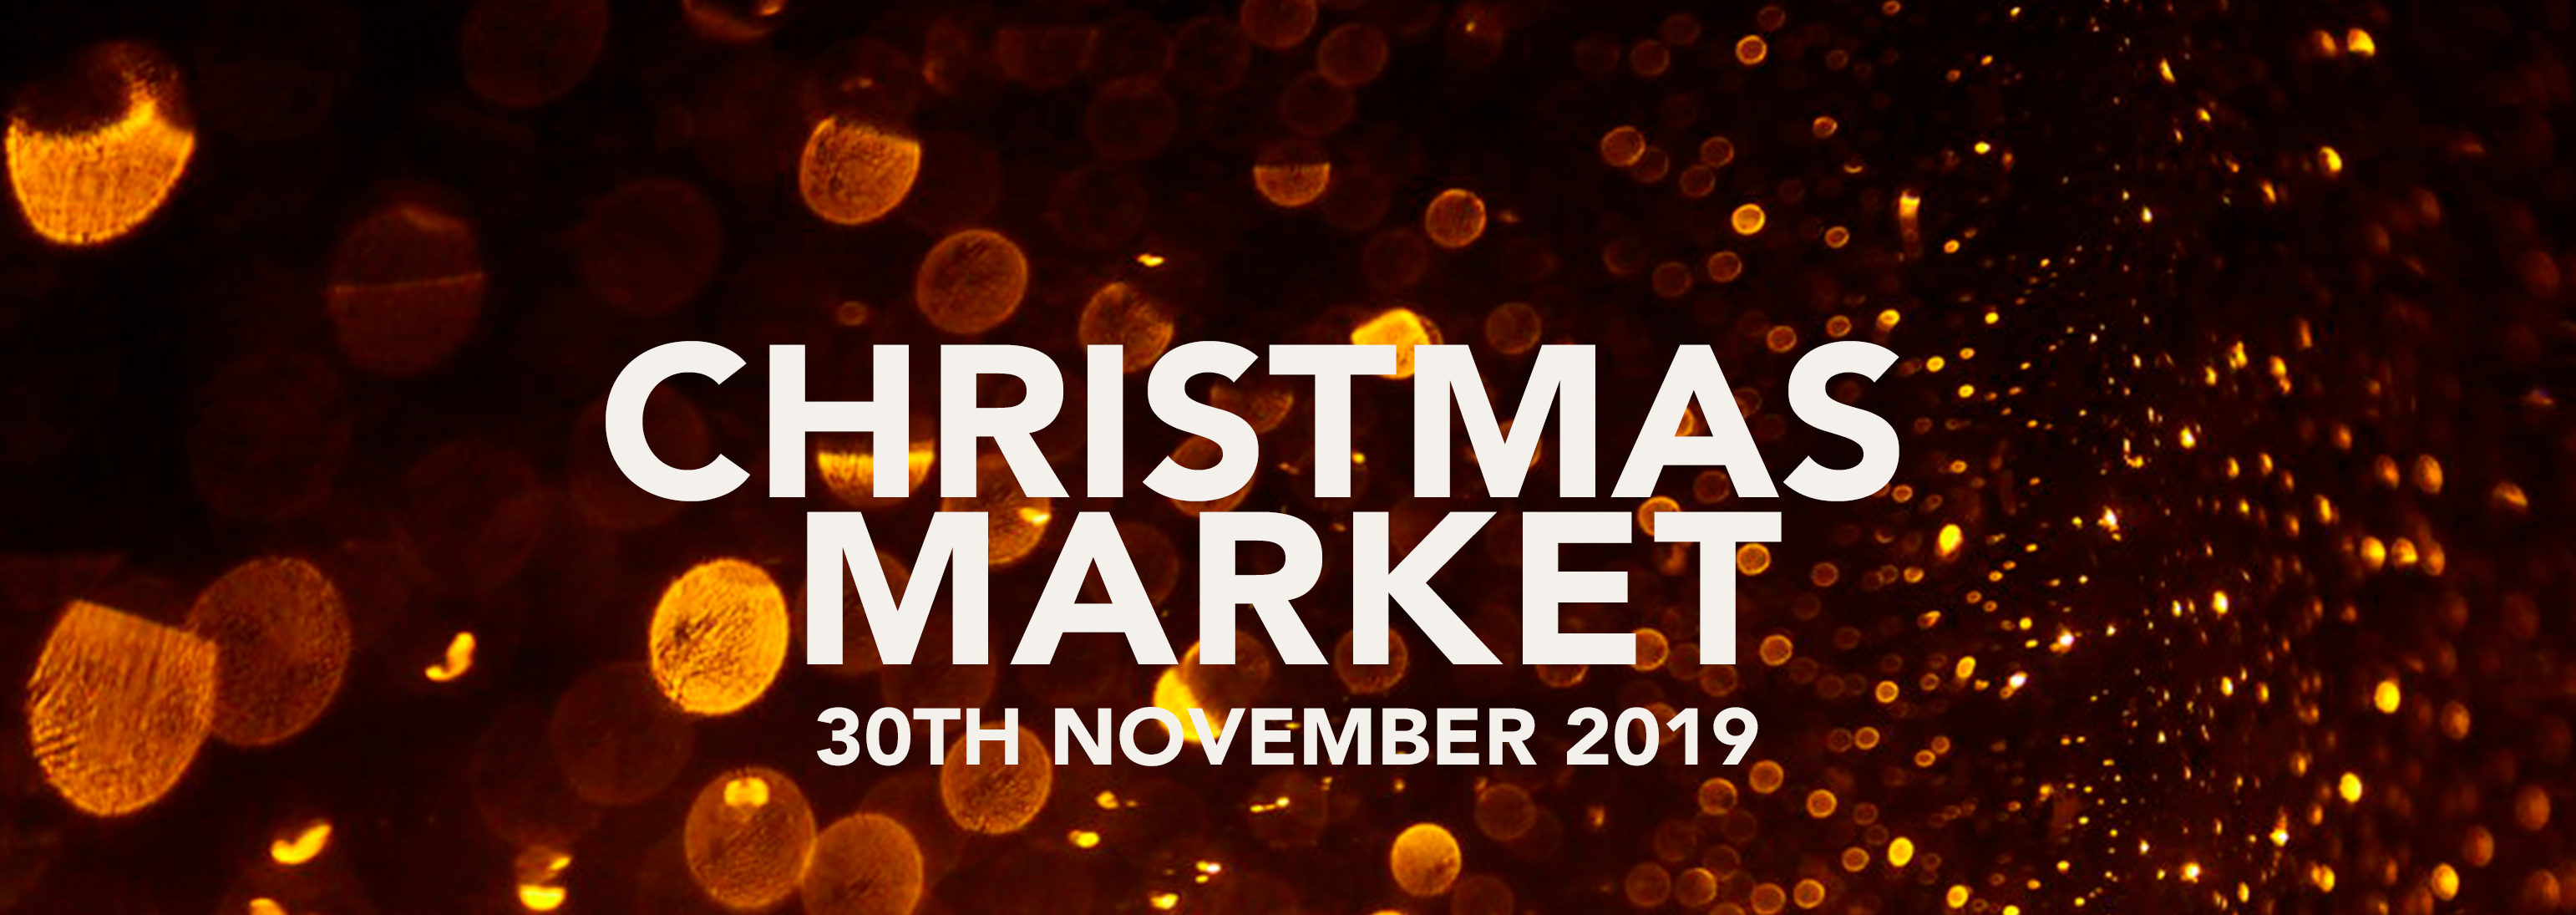 Woodford Christmas Market 2019